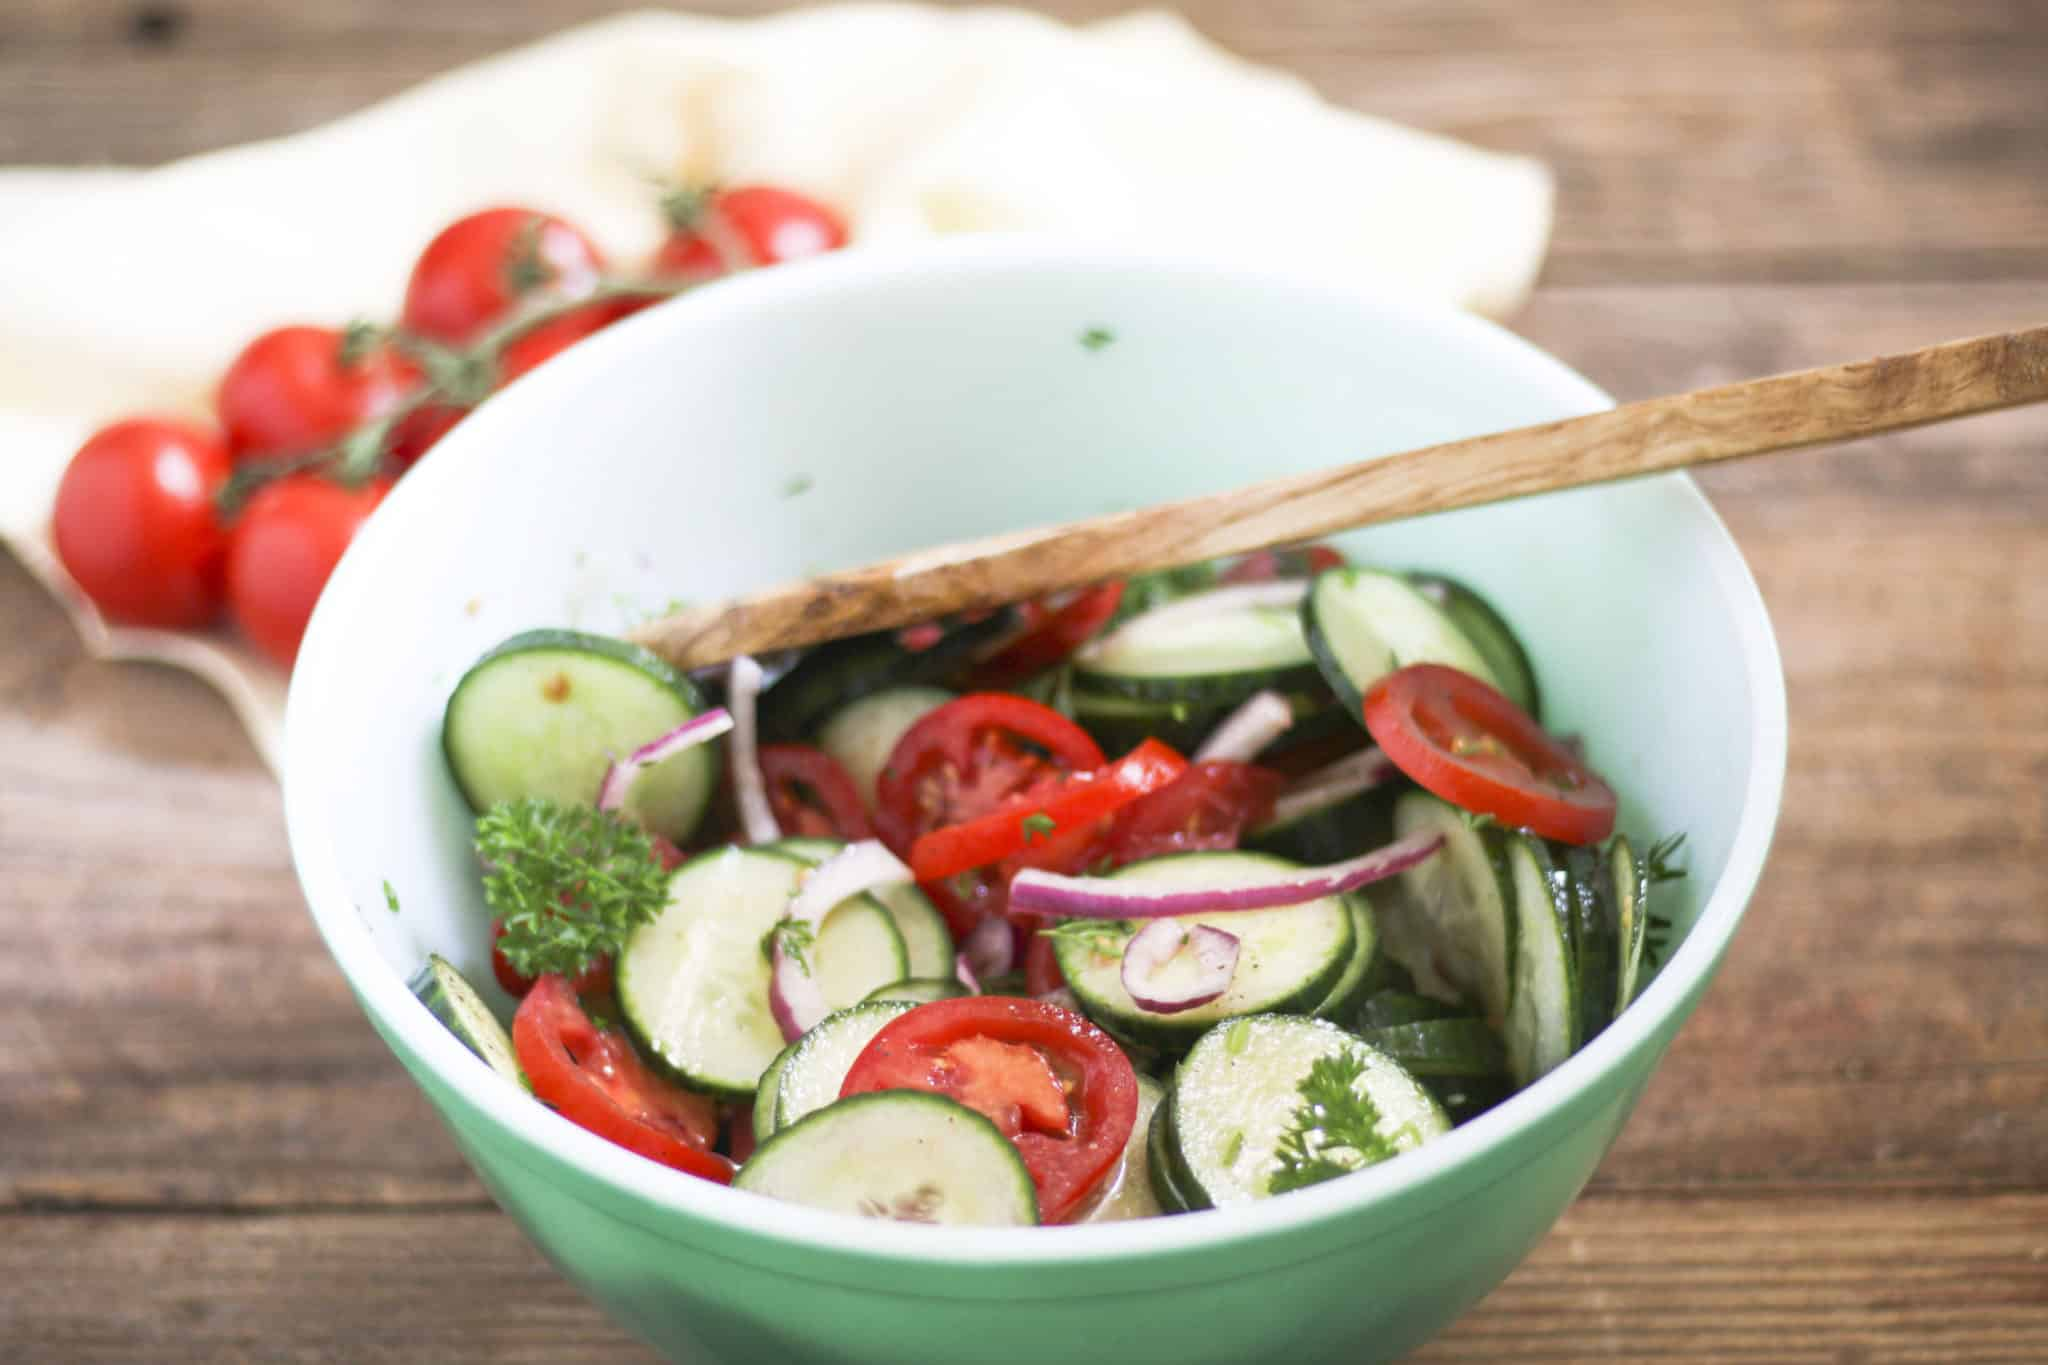 Sliced Cucumbers and Tomatoes in green bowl with red onion and a wood serving spoon